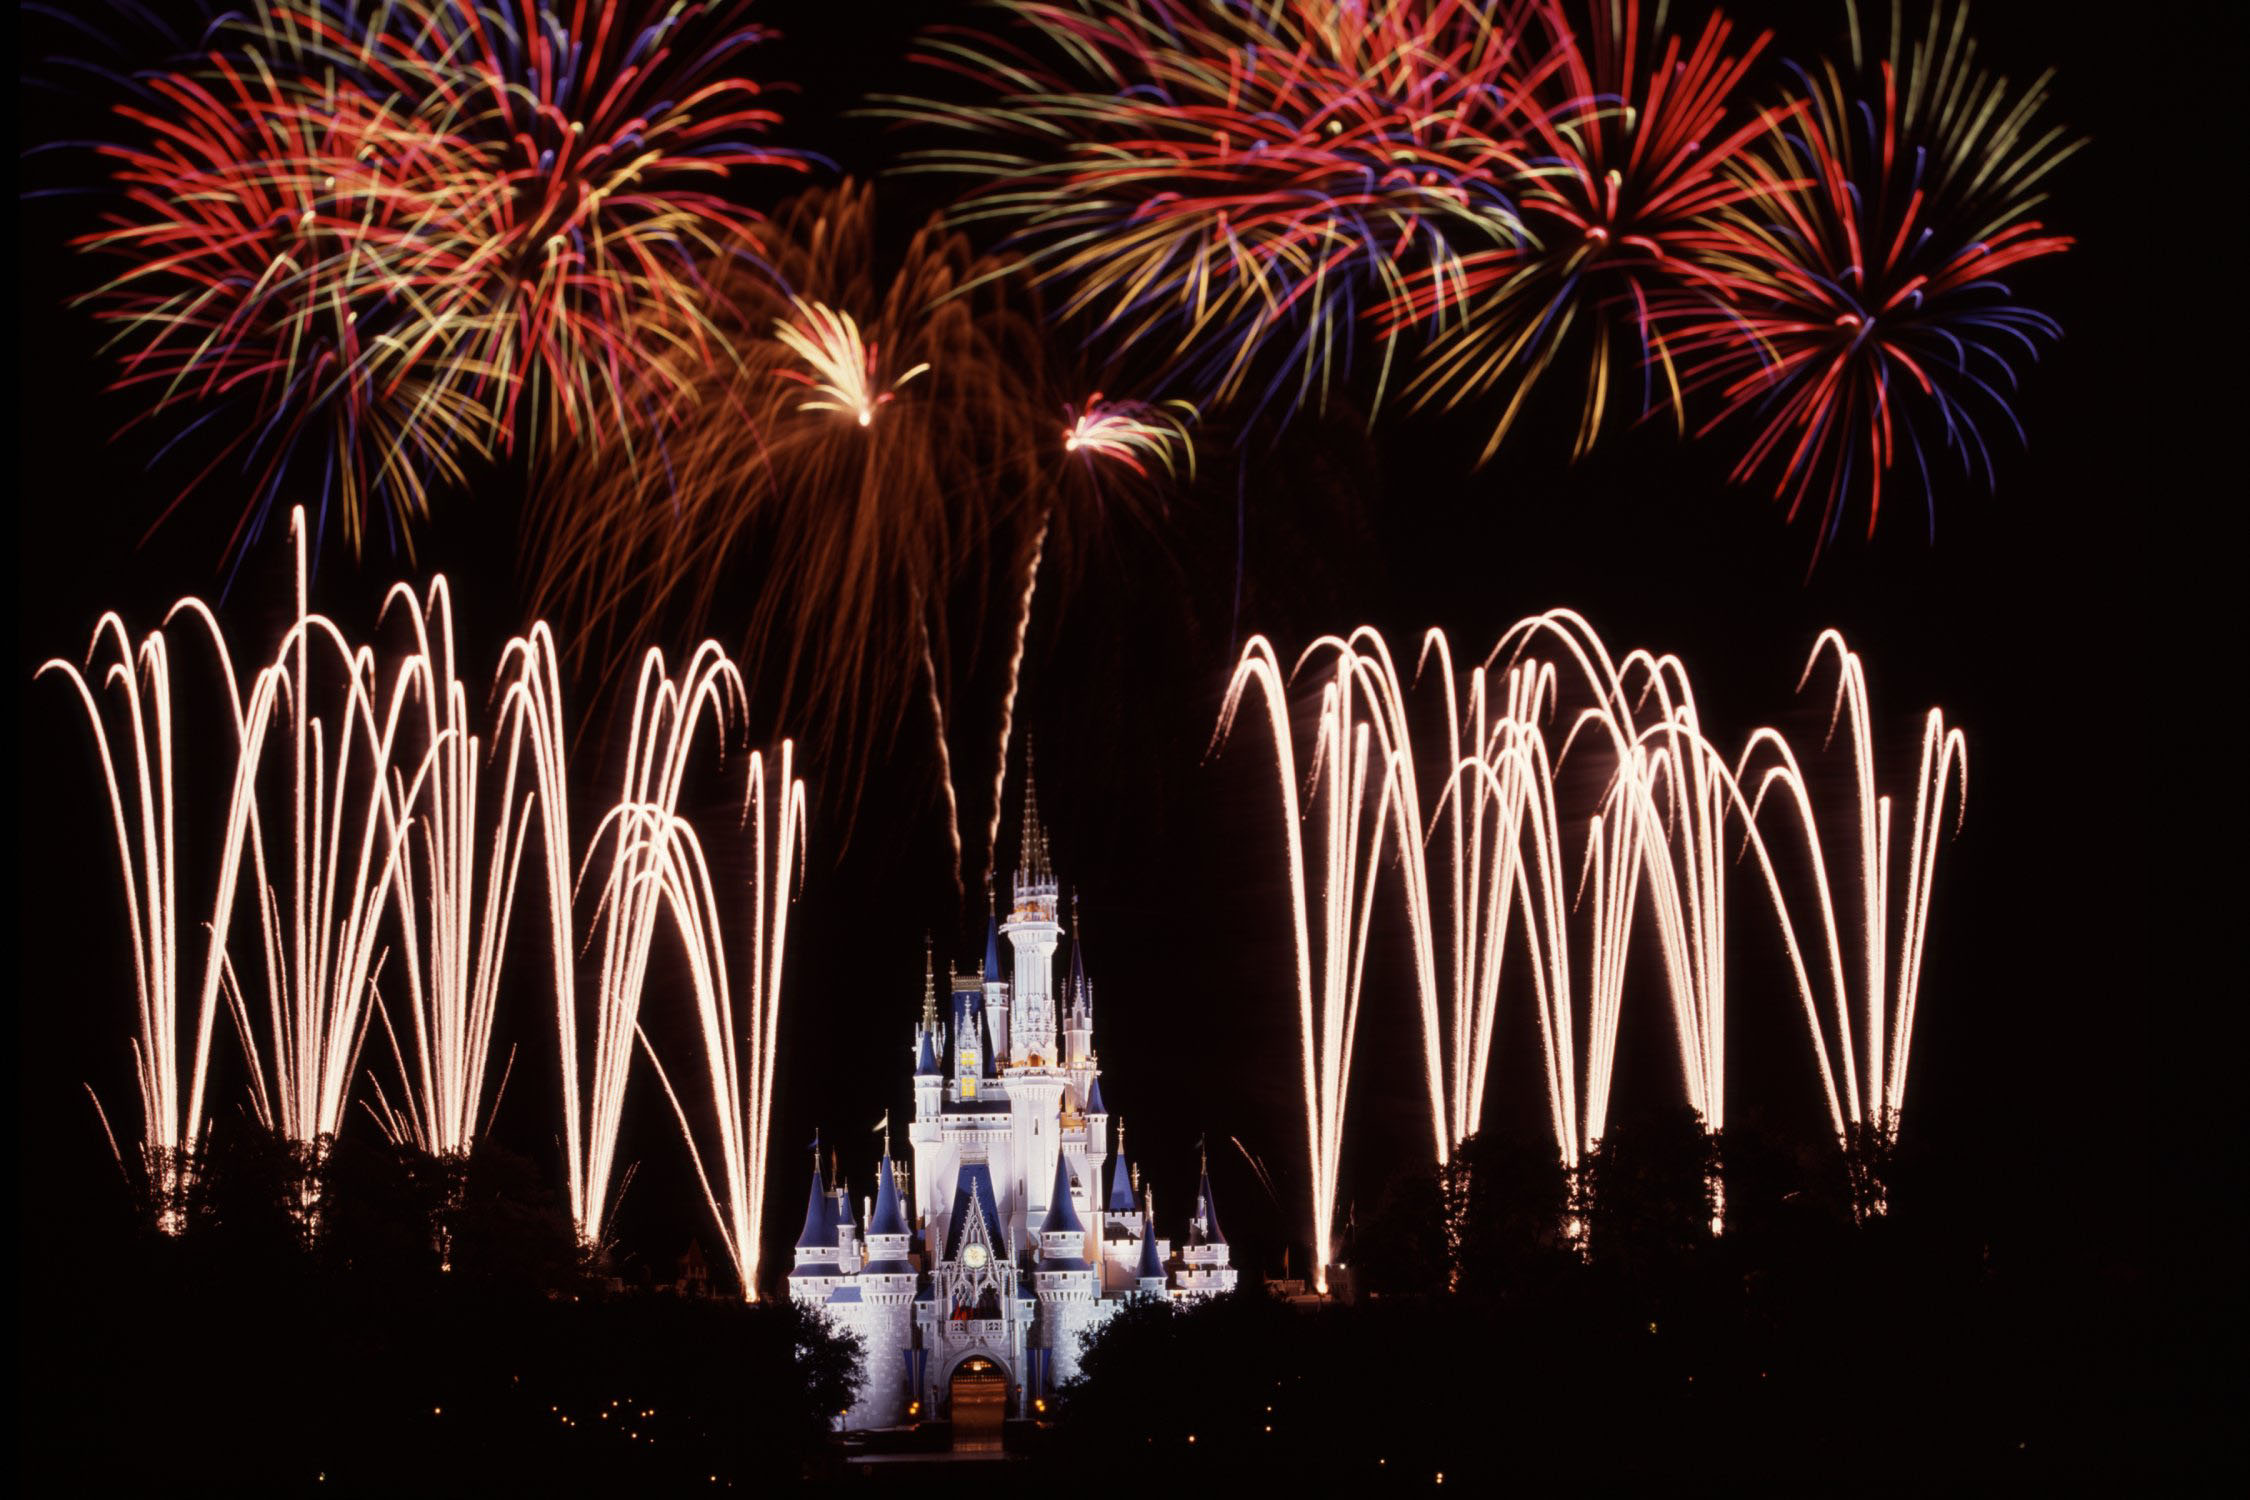 The Best Way To See The Wishes Fireworks At Disney World